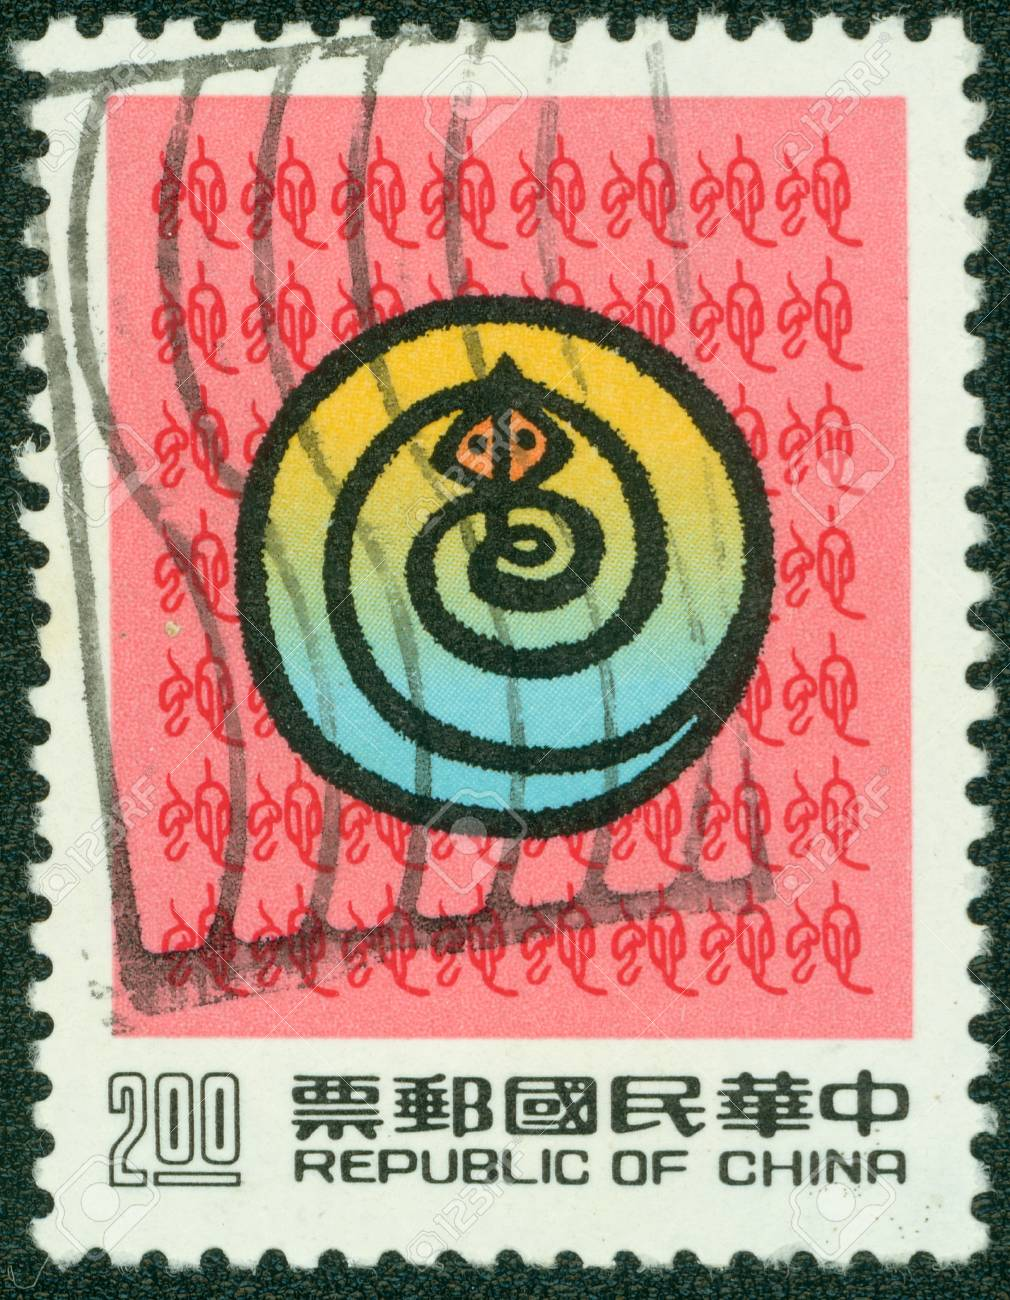 REPUBLIC OF CHINA  TAIWAN  - CIRCA 1989  A stamp printed in TAIWAN shows image of Chinese Zodiac Snake Design, circa 1989 Stock Photo - 14830298